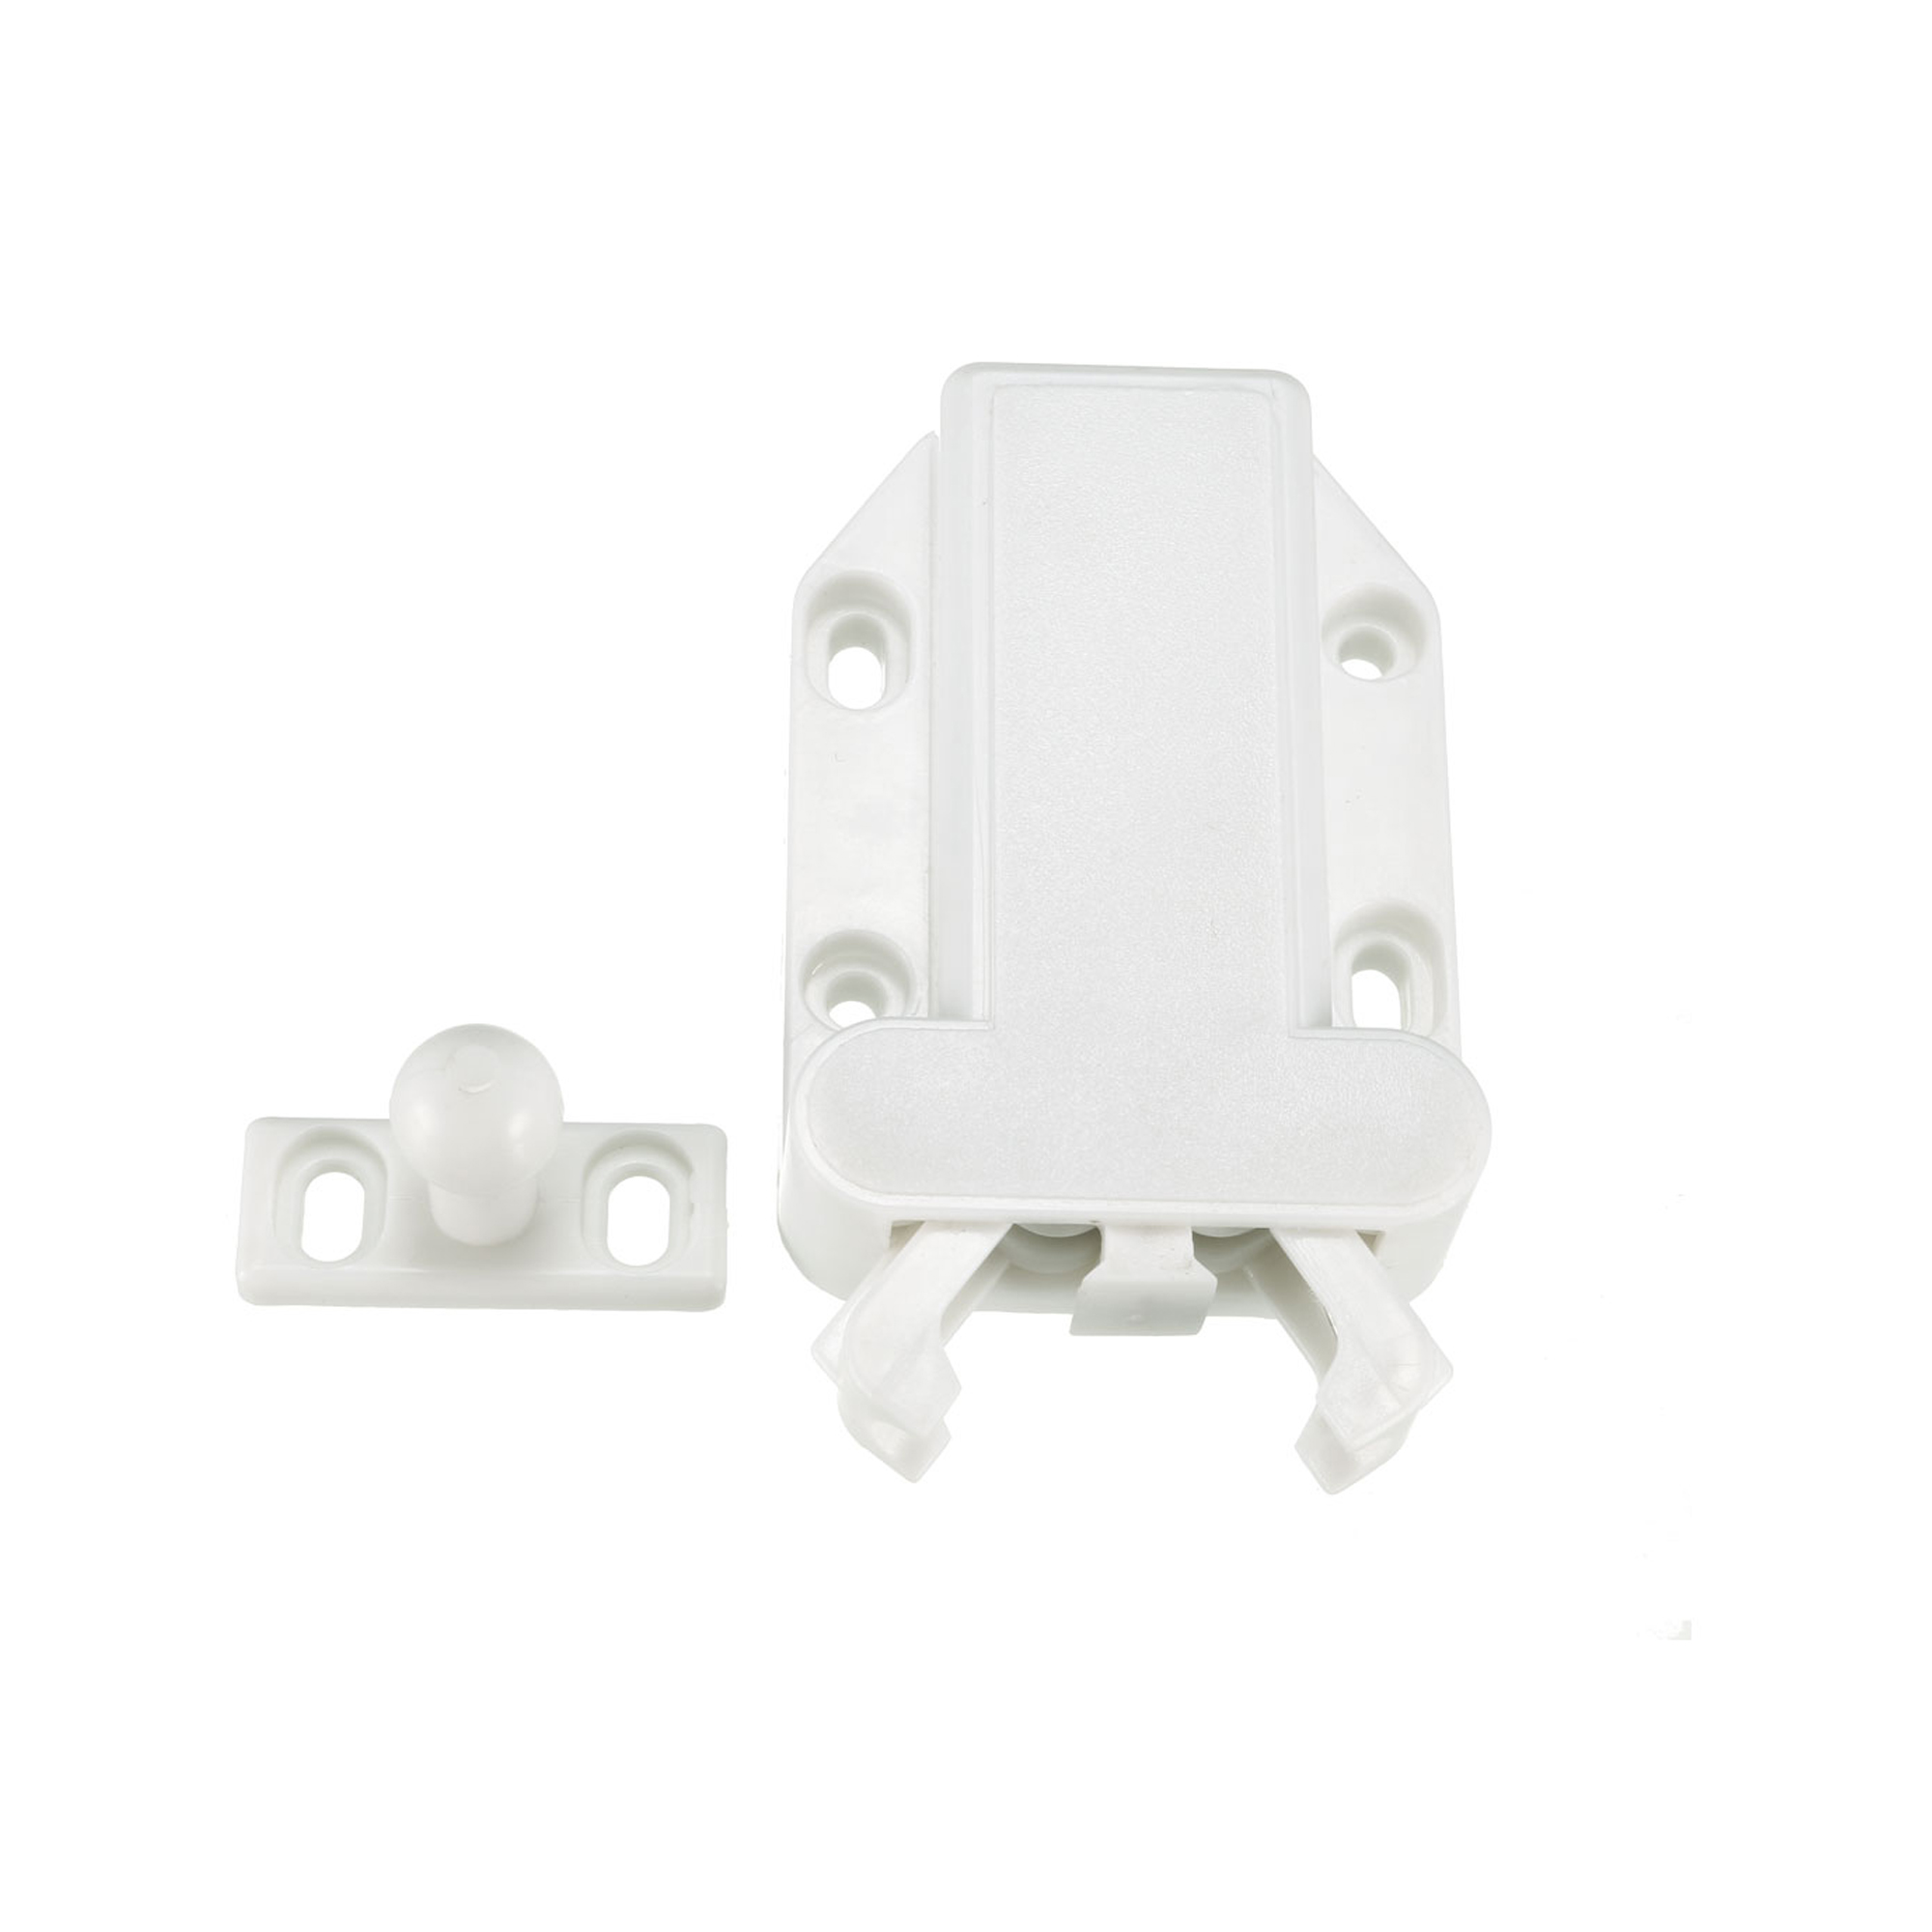 Push Open Latch Lock Touch Catch for Bedroom Cabinet Cupboard Drawer White 5Pcs - image 4 of 8